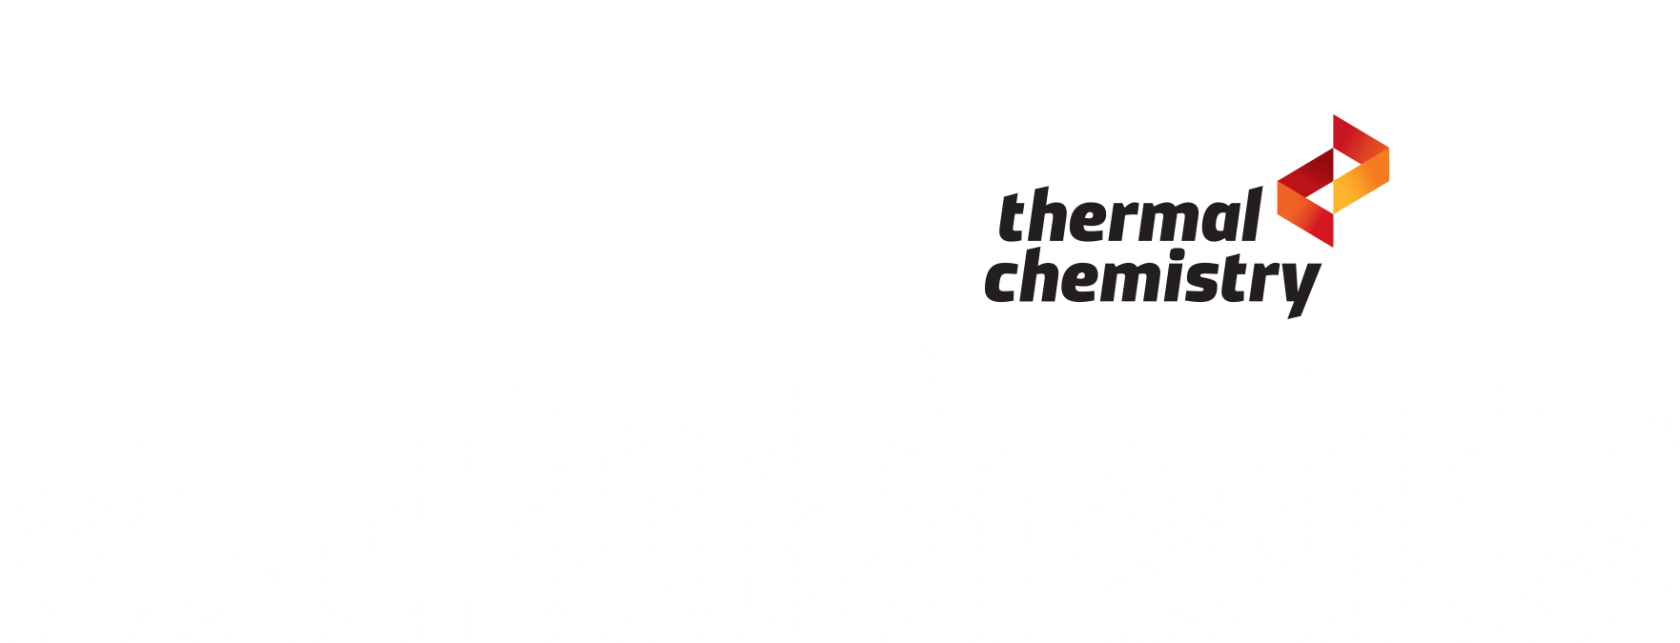 Thermal Chemistry Parallax Overlay